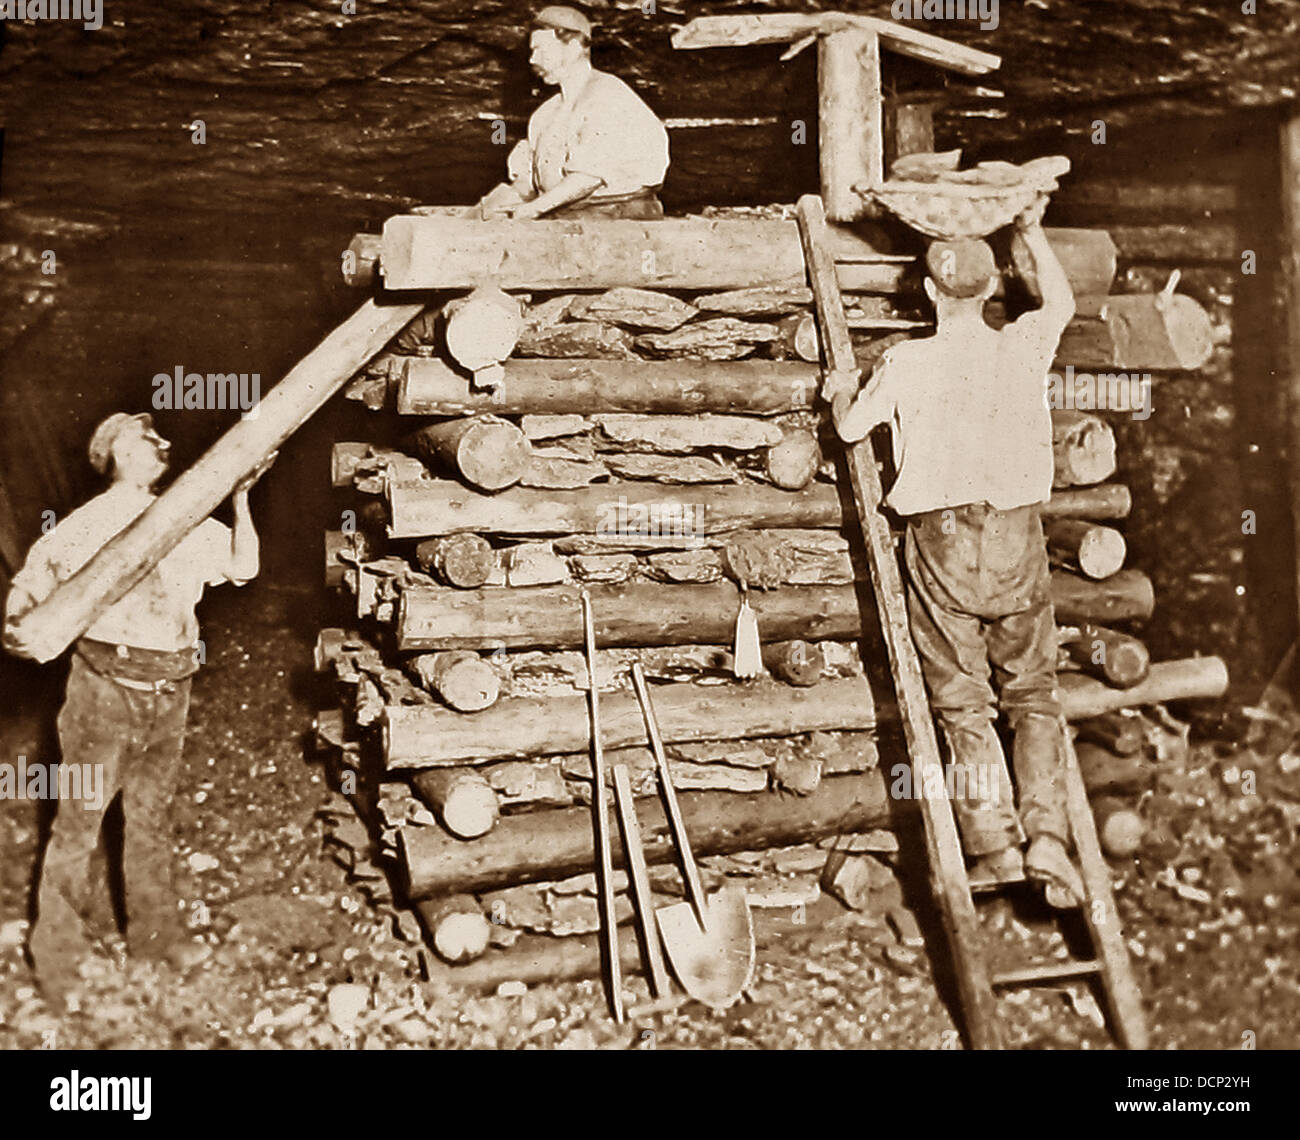 Miners building a cog Victorian period - Stock Image